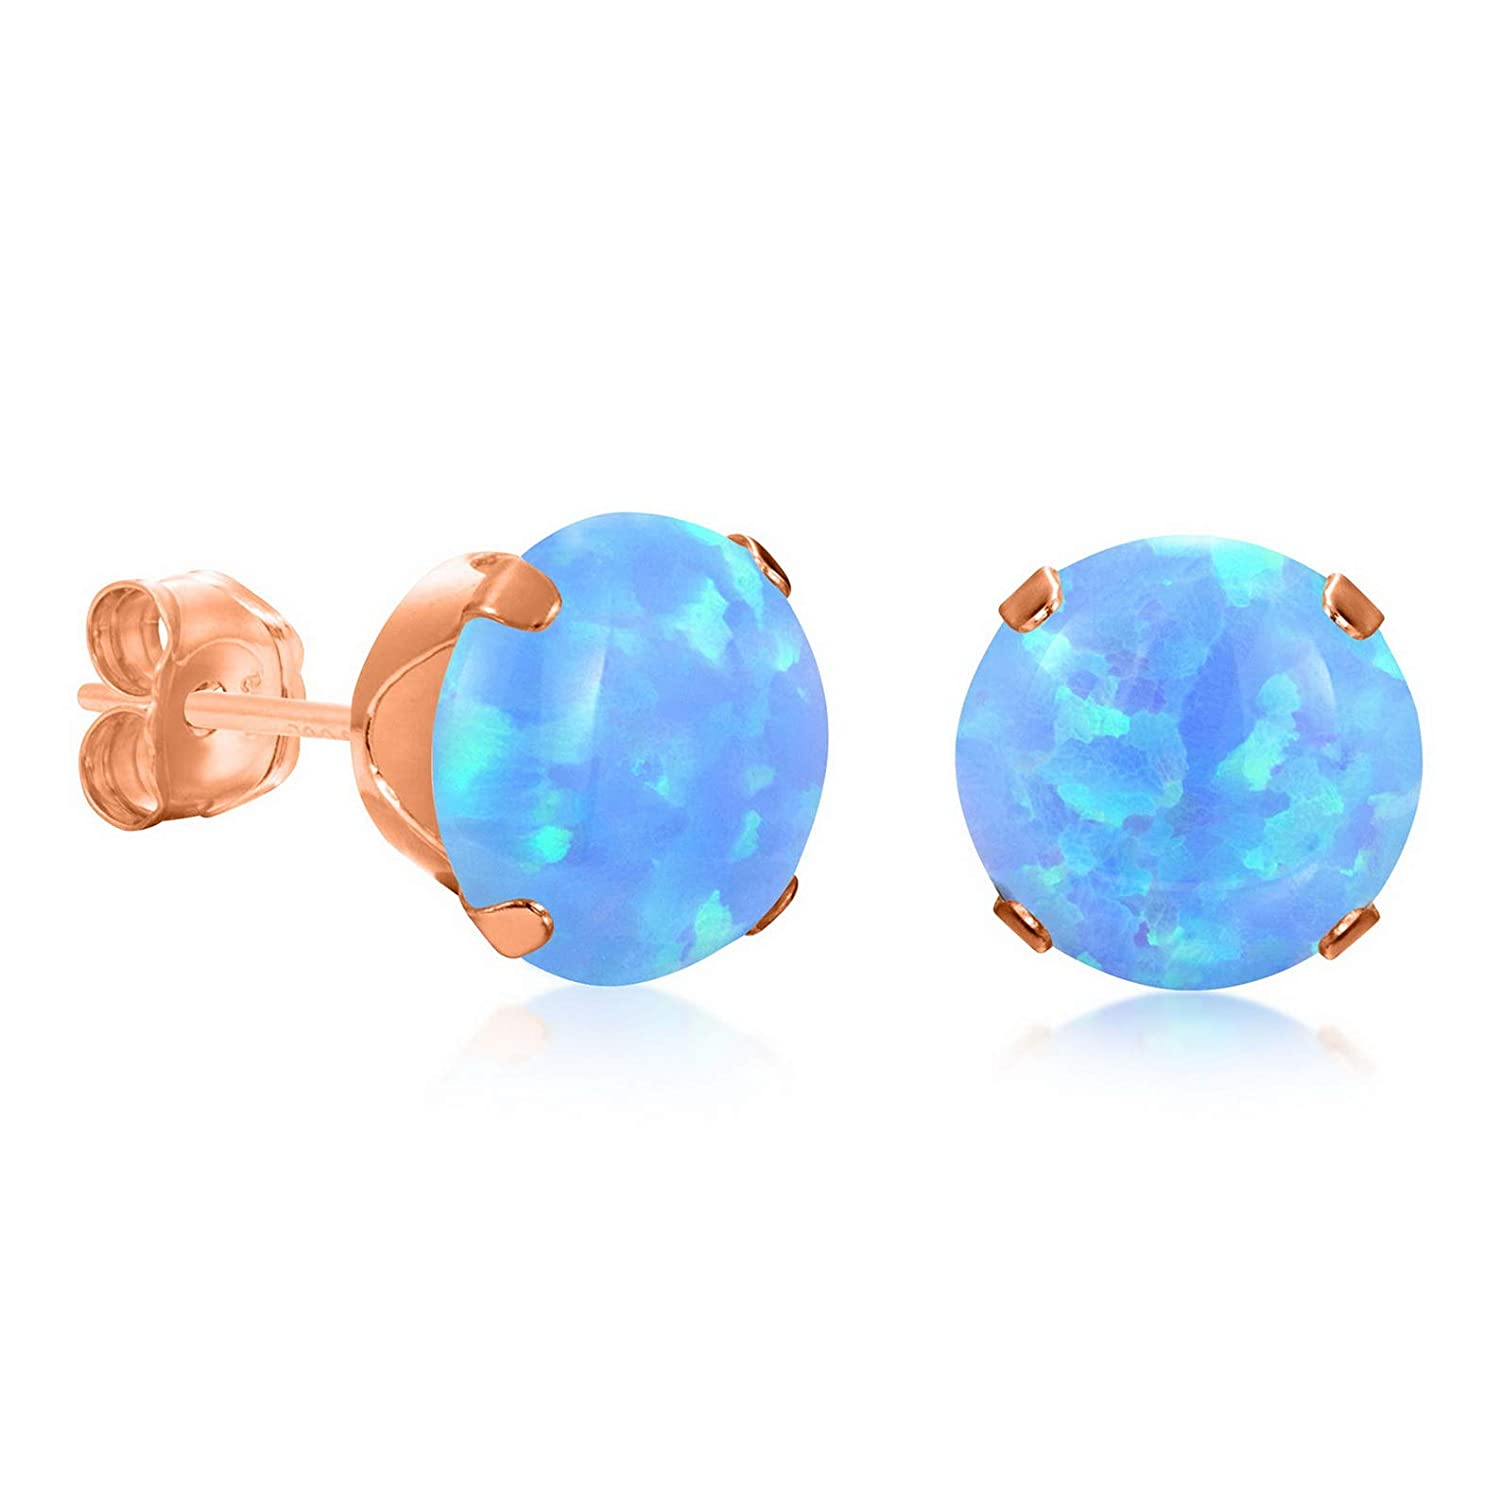 13392 Campton Round Blue Simulated Opal Stud Earring Rose Gold Plated Sterling Silver 925 Extra Large 7mm Model ERRNGS